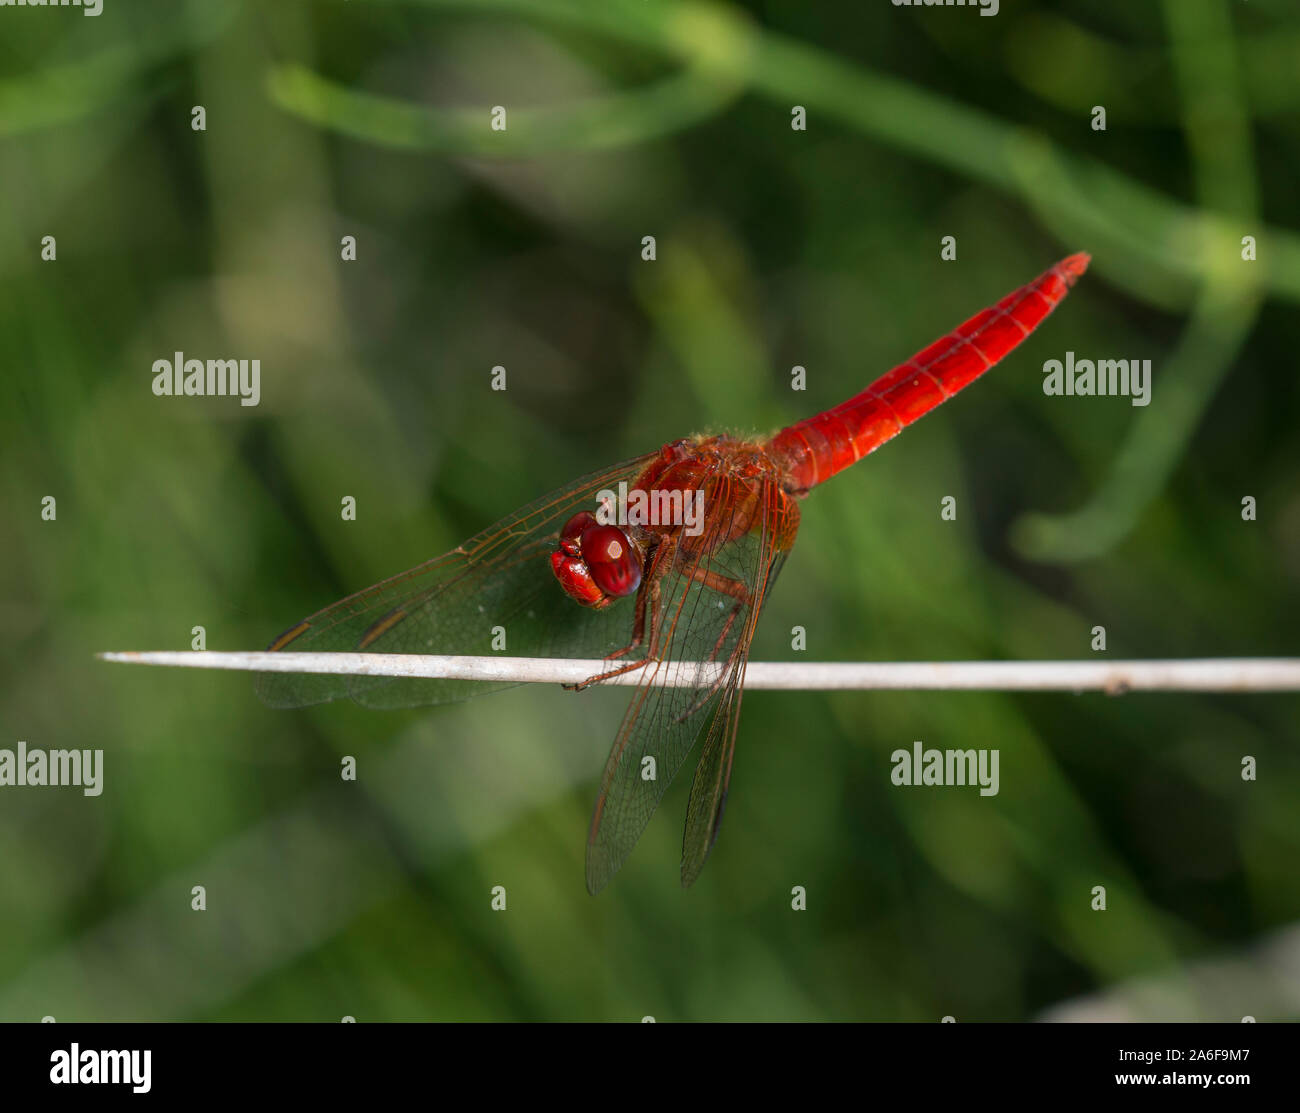 Male Scarlet Dragonfly (Crocothemis erythraea) on a rush stem, Milos, Cyclades Islands, Greece. Stock Photo